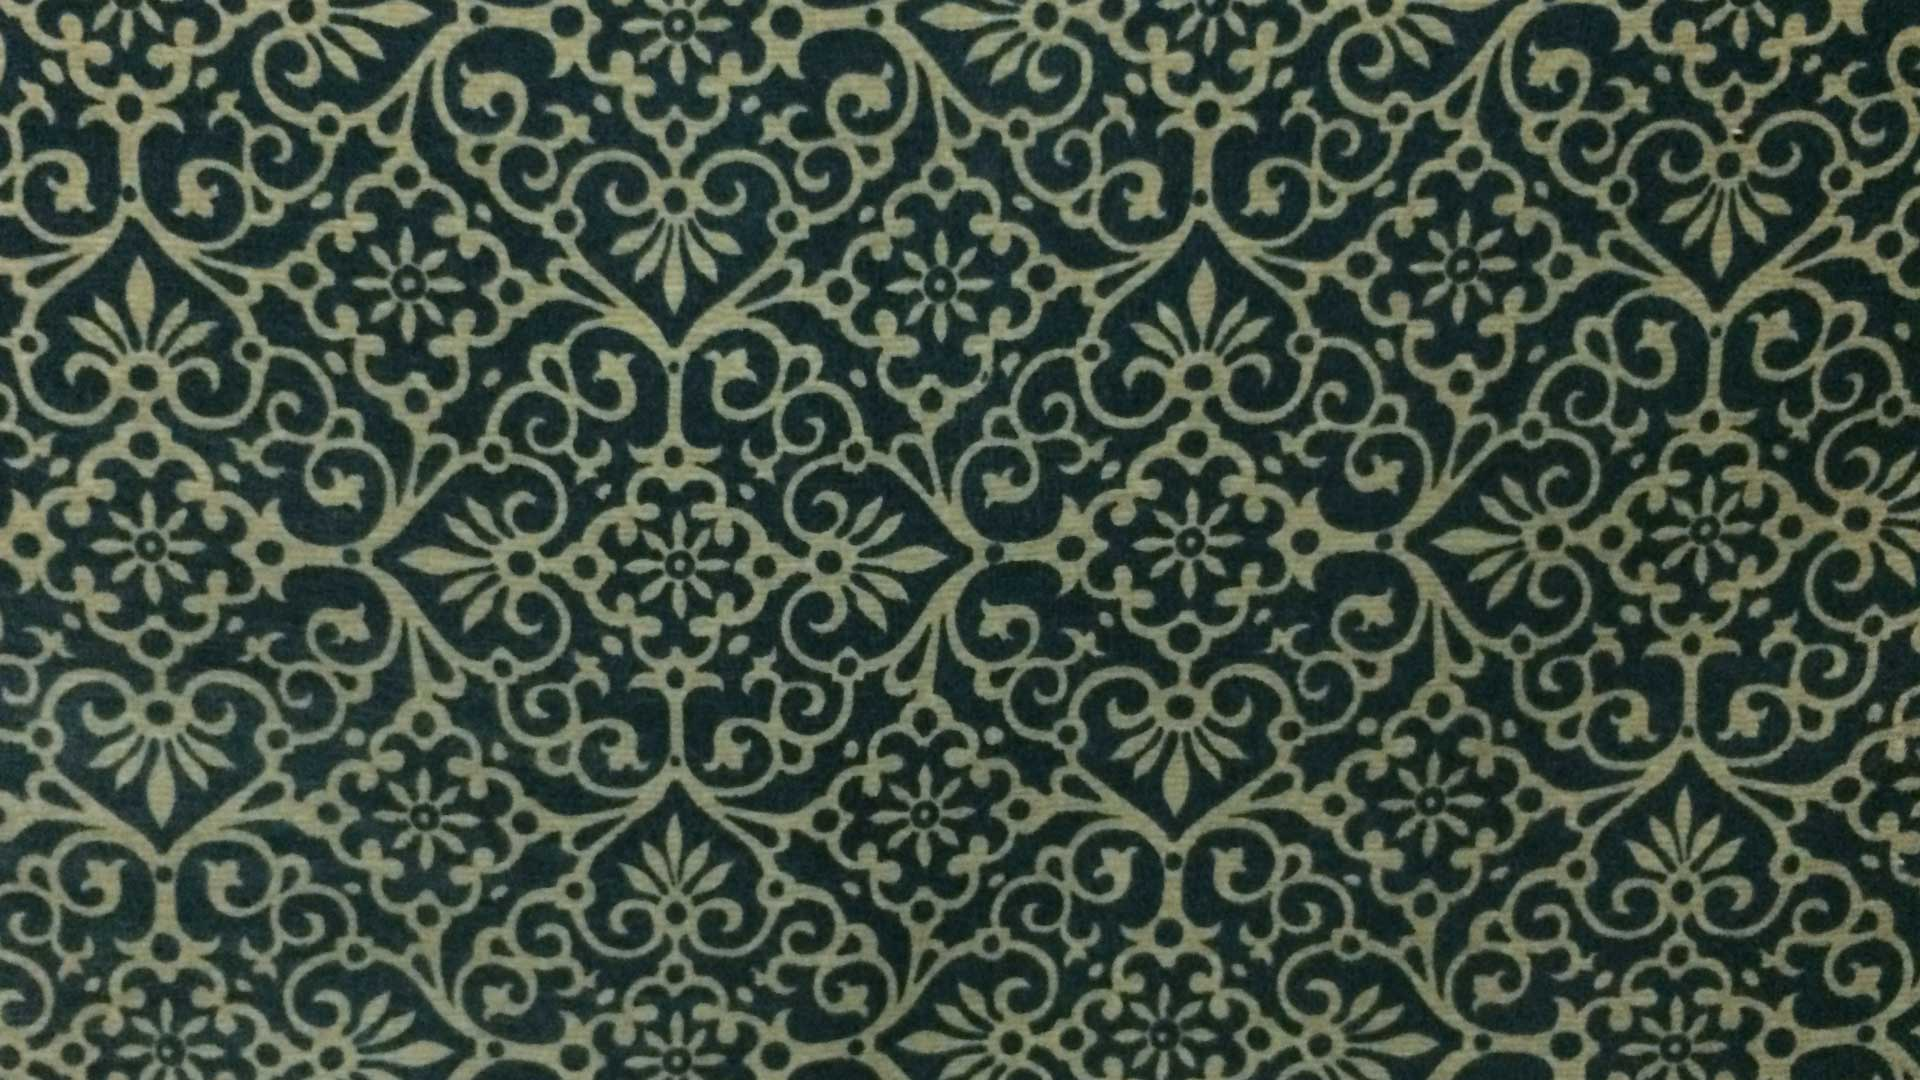 Image contains a patterned background.